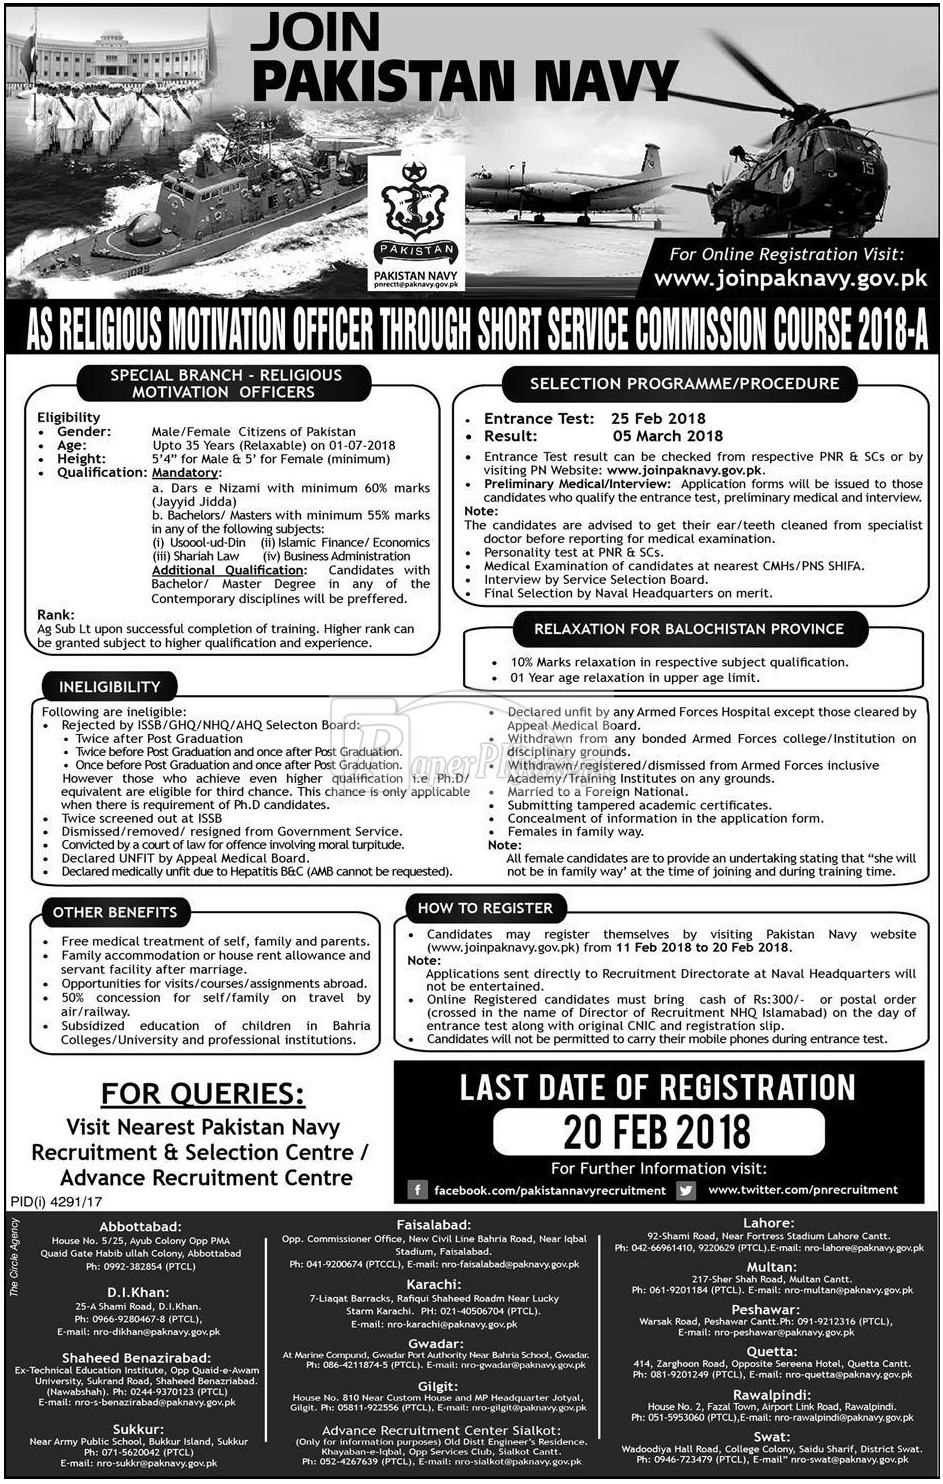 Join Pakistan Navy as Religious Motivation Officer 2018